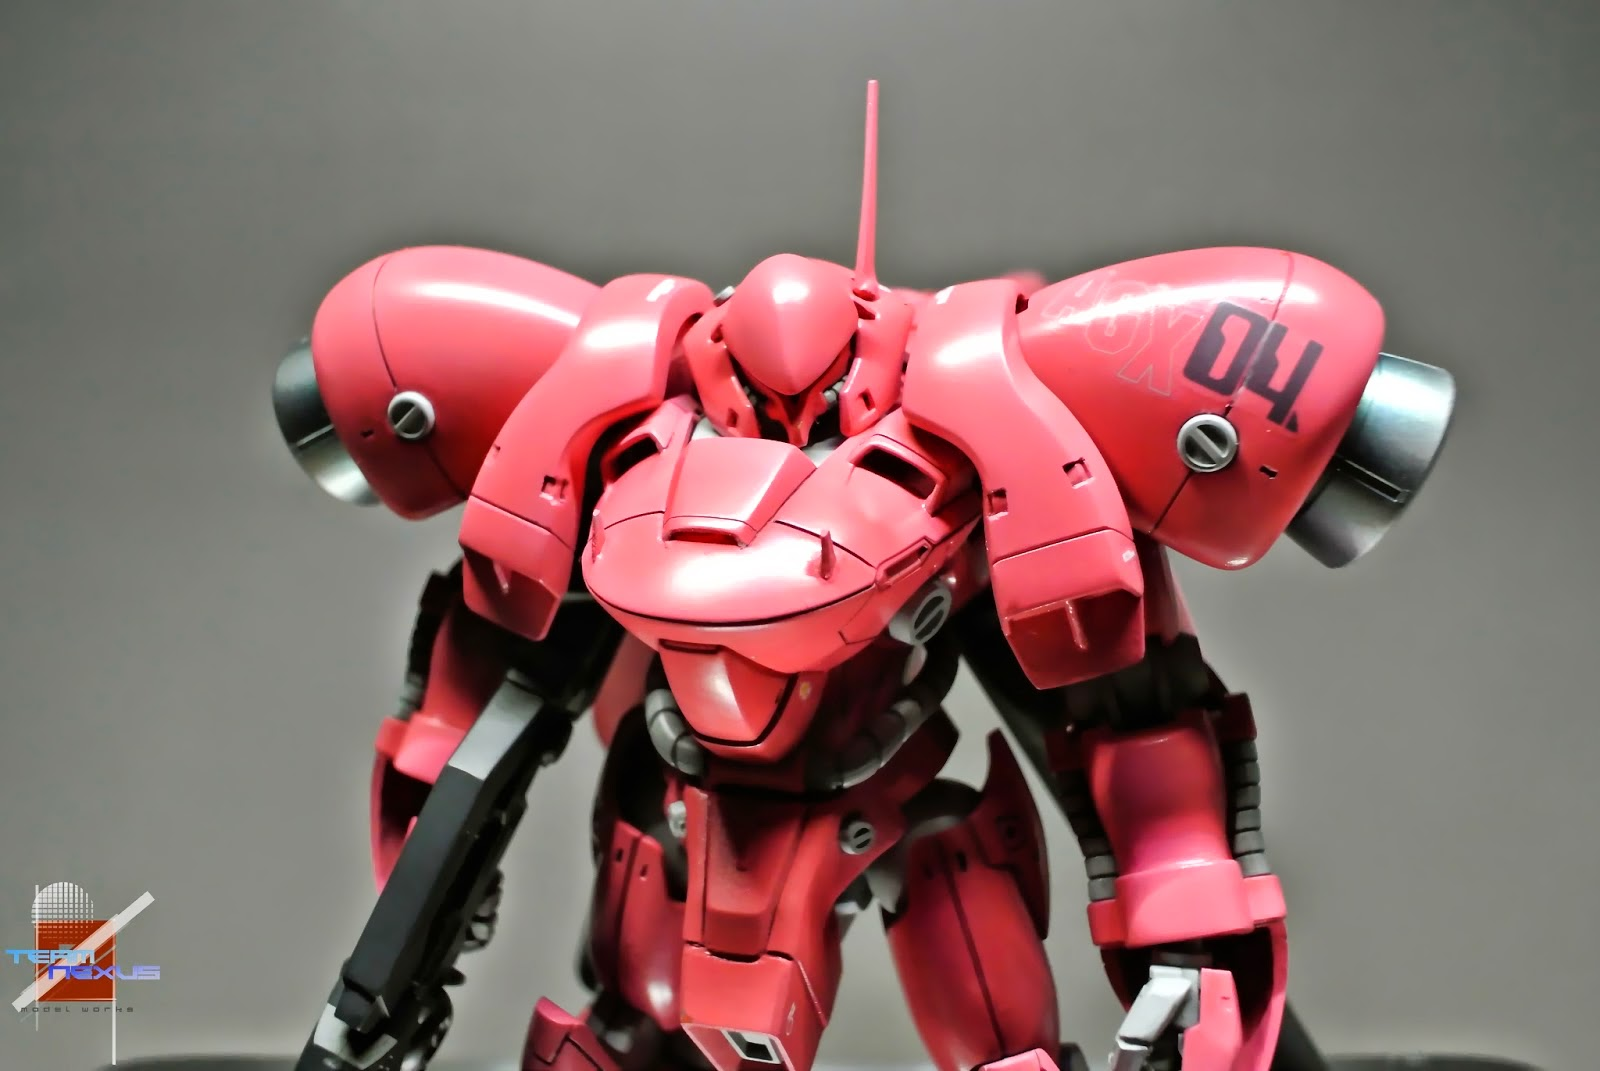 HGUC Gerbera Tetra modeled by Living01photo